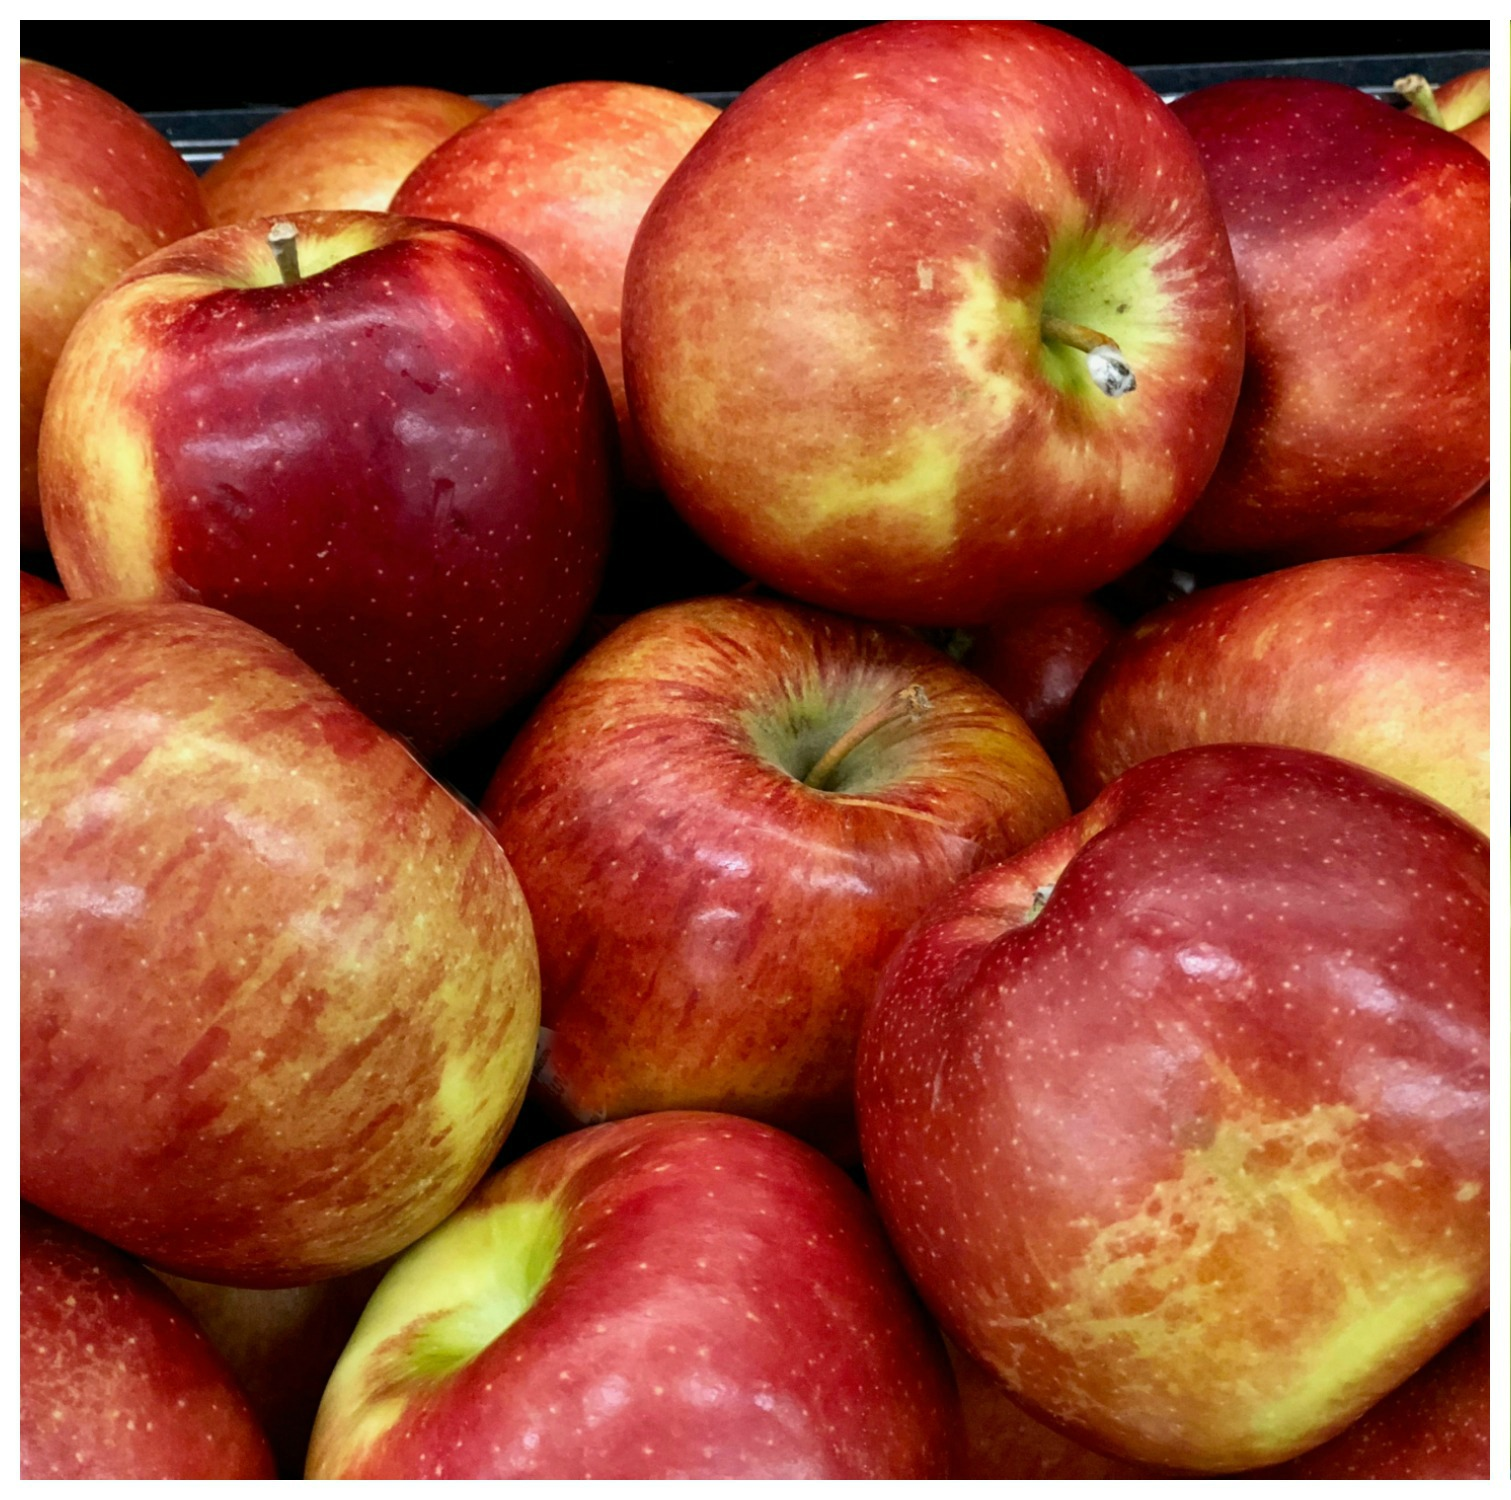 red apples in a pile